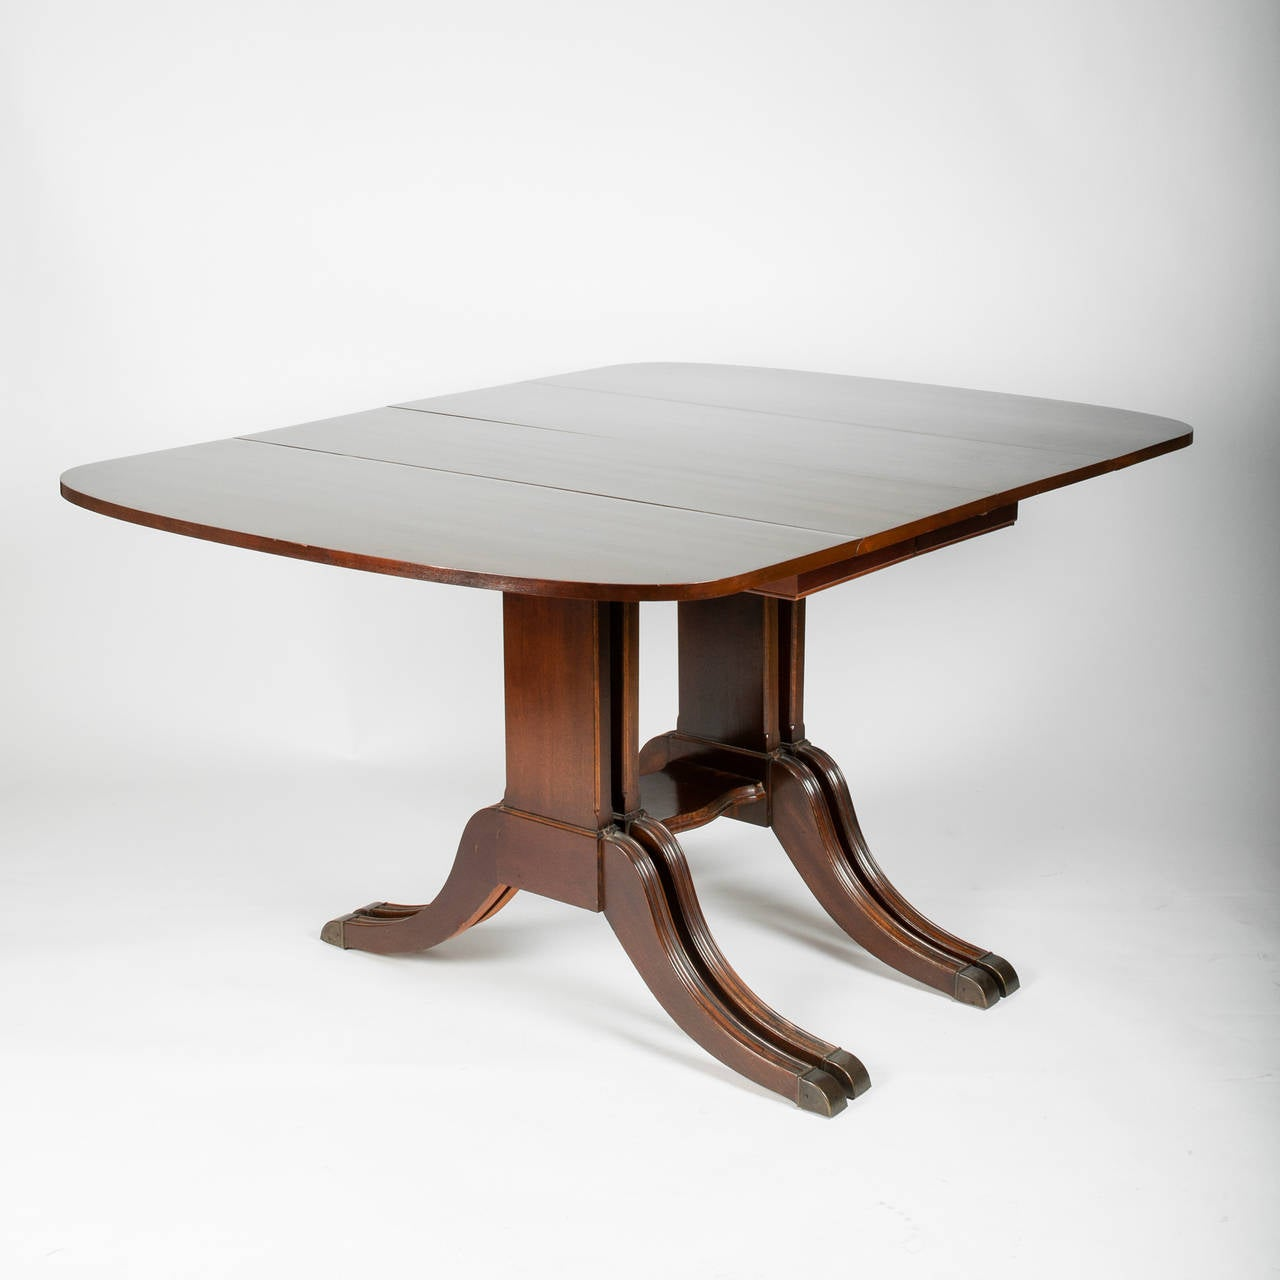 Duncan Phyfe Style Drop Leaf Extension Table For Sale at  : 069l from www.1stdibs.com size 1280 x 1280 jpeg 64kB